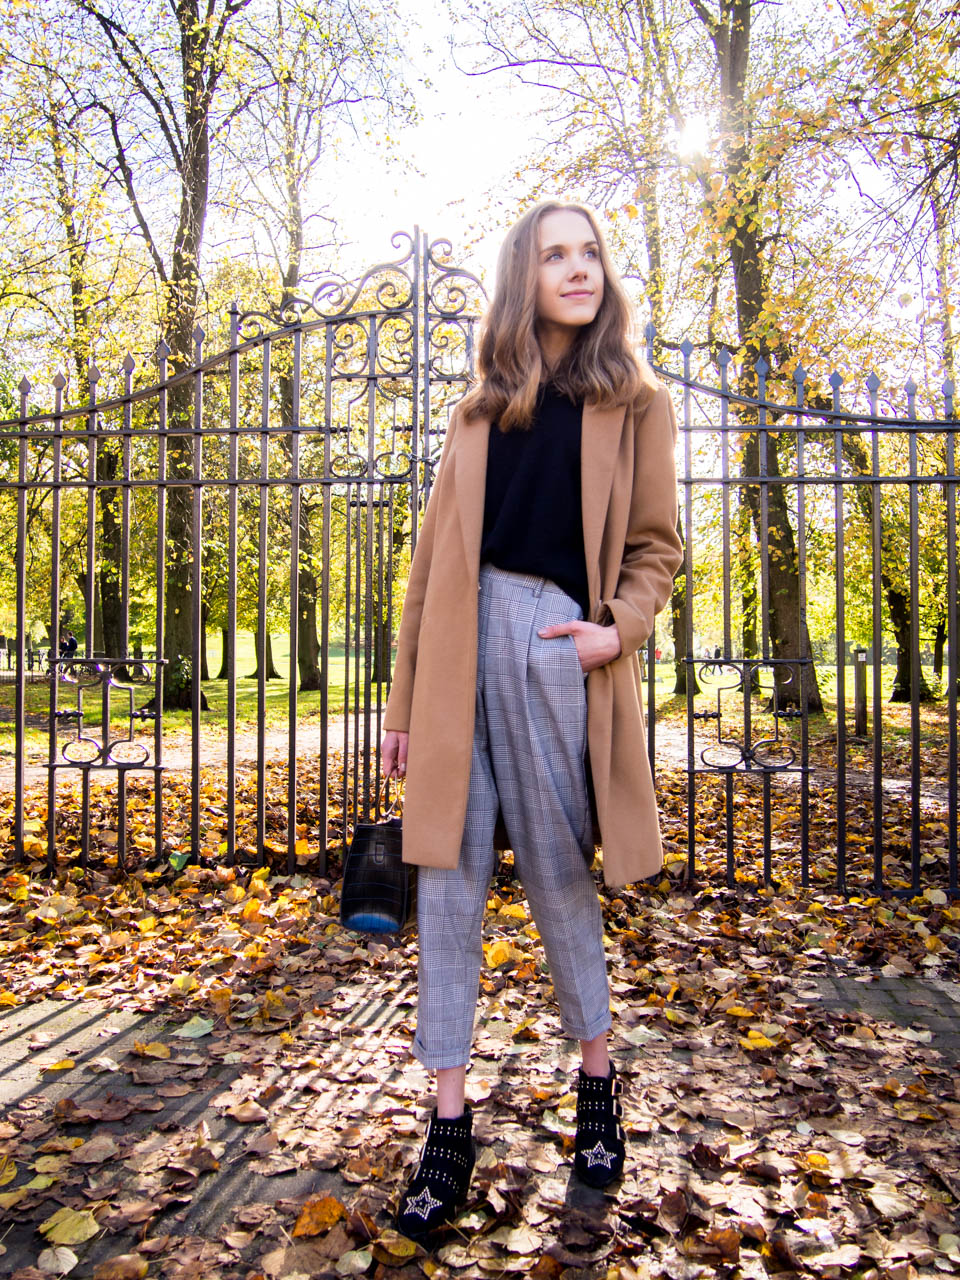 fashion-blogger-autumn-outfit-inspiration-camel-coat-check-trousers-studded-ankle-boots